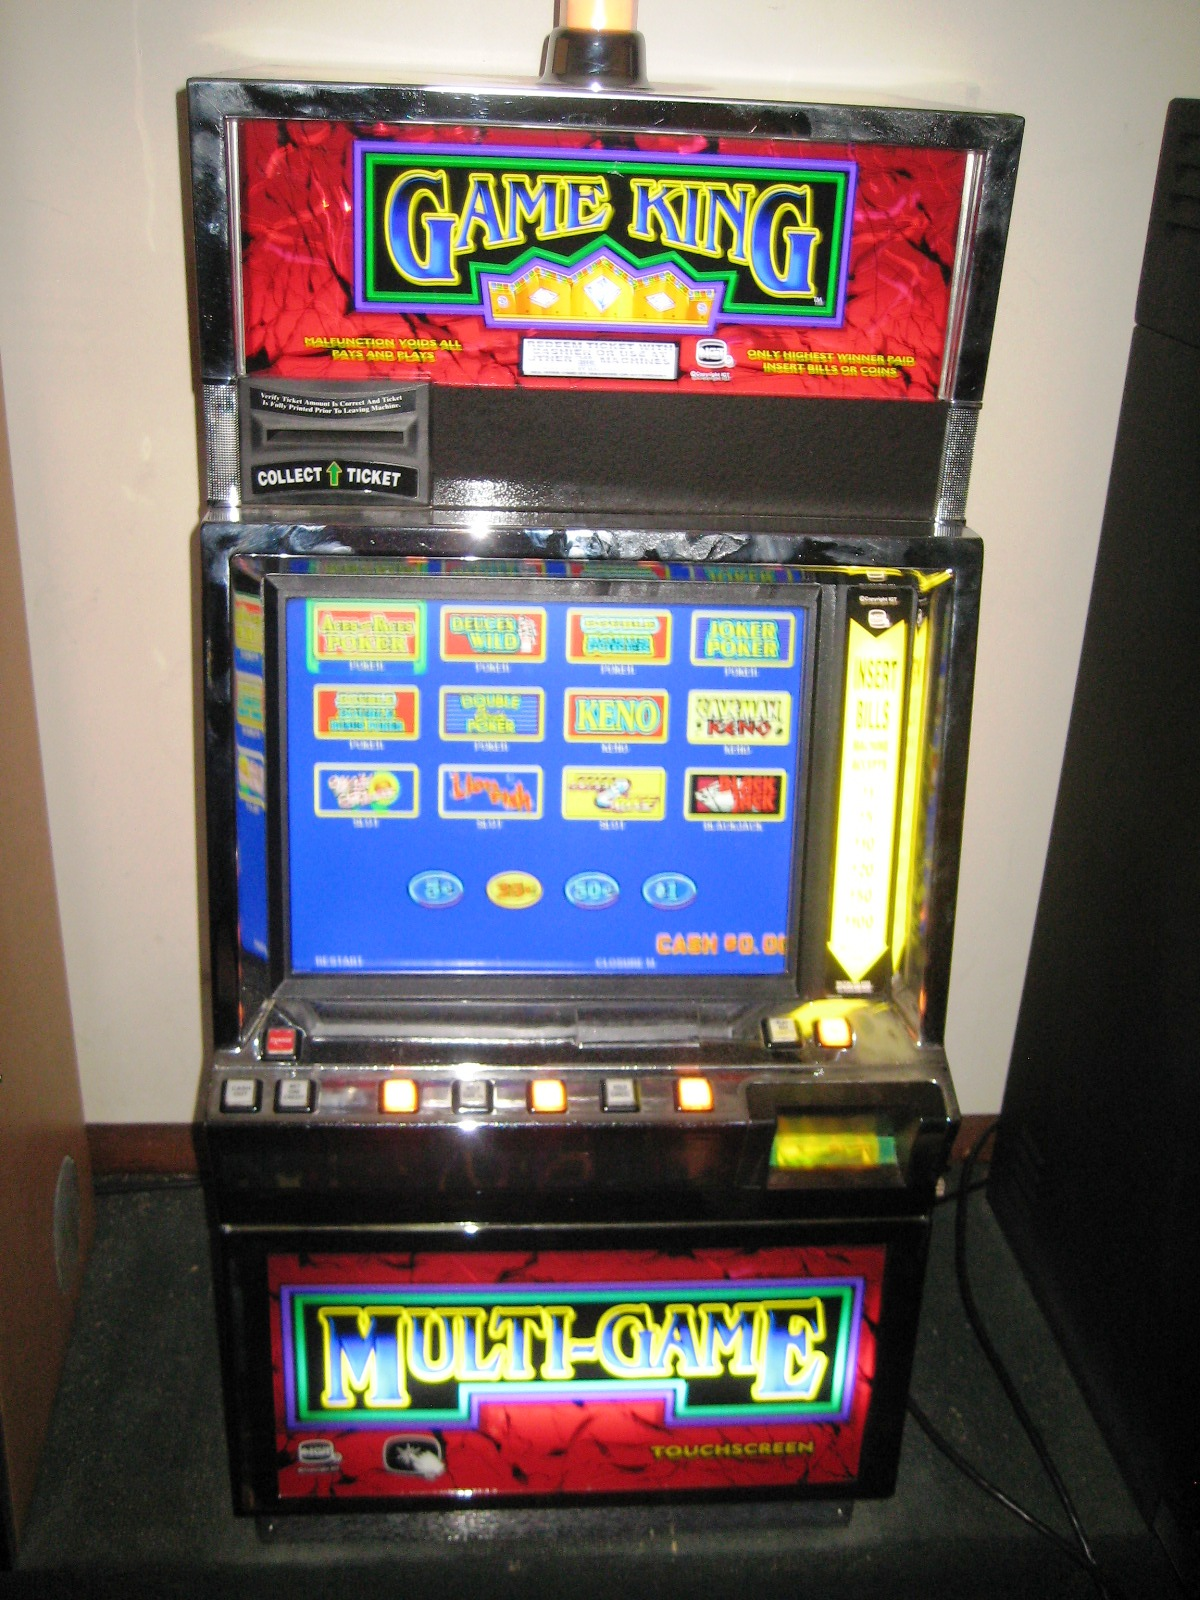 IGT Game King Multi-Game Video Poker 17″LCD